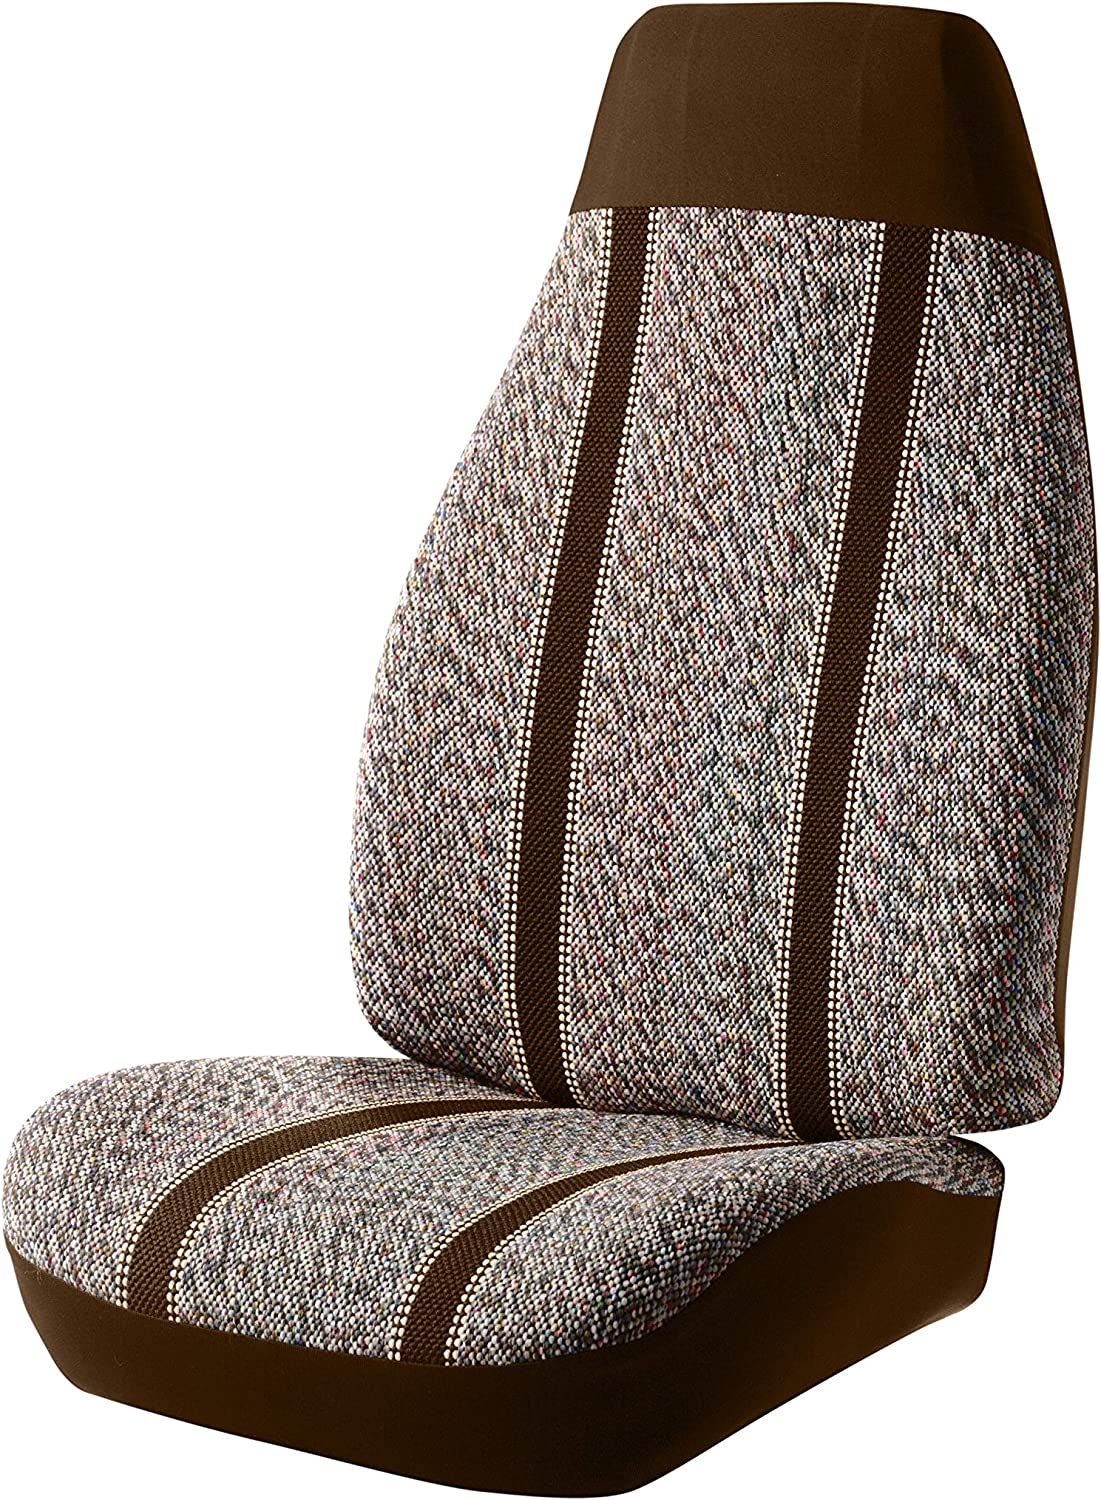 Max 47% OFF FIA TR42-83 BROWN Custom Fit Rear 40 60 Cover - ! Super beauty product restock quality top! Split Seat